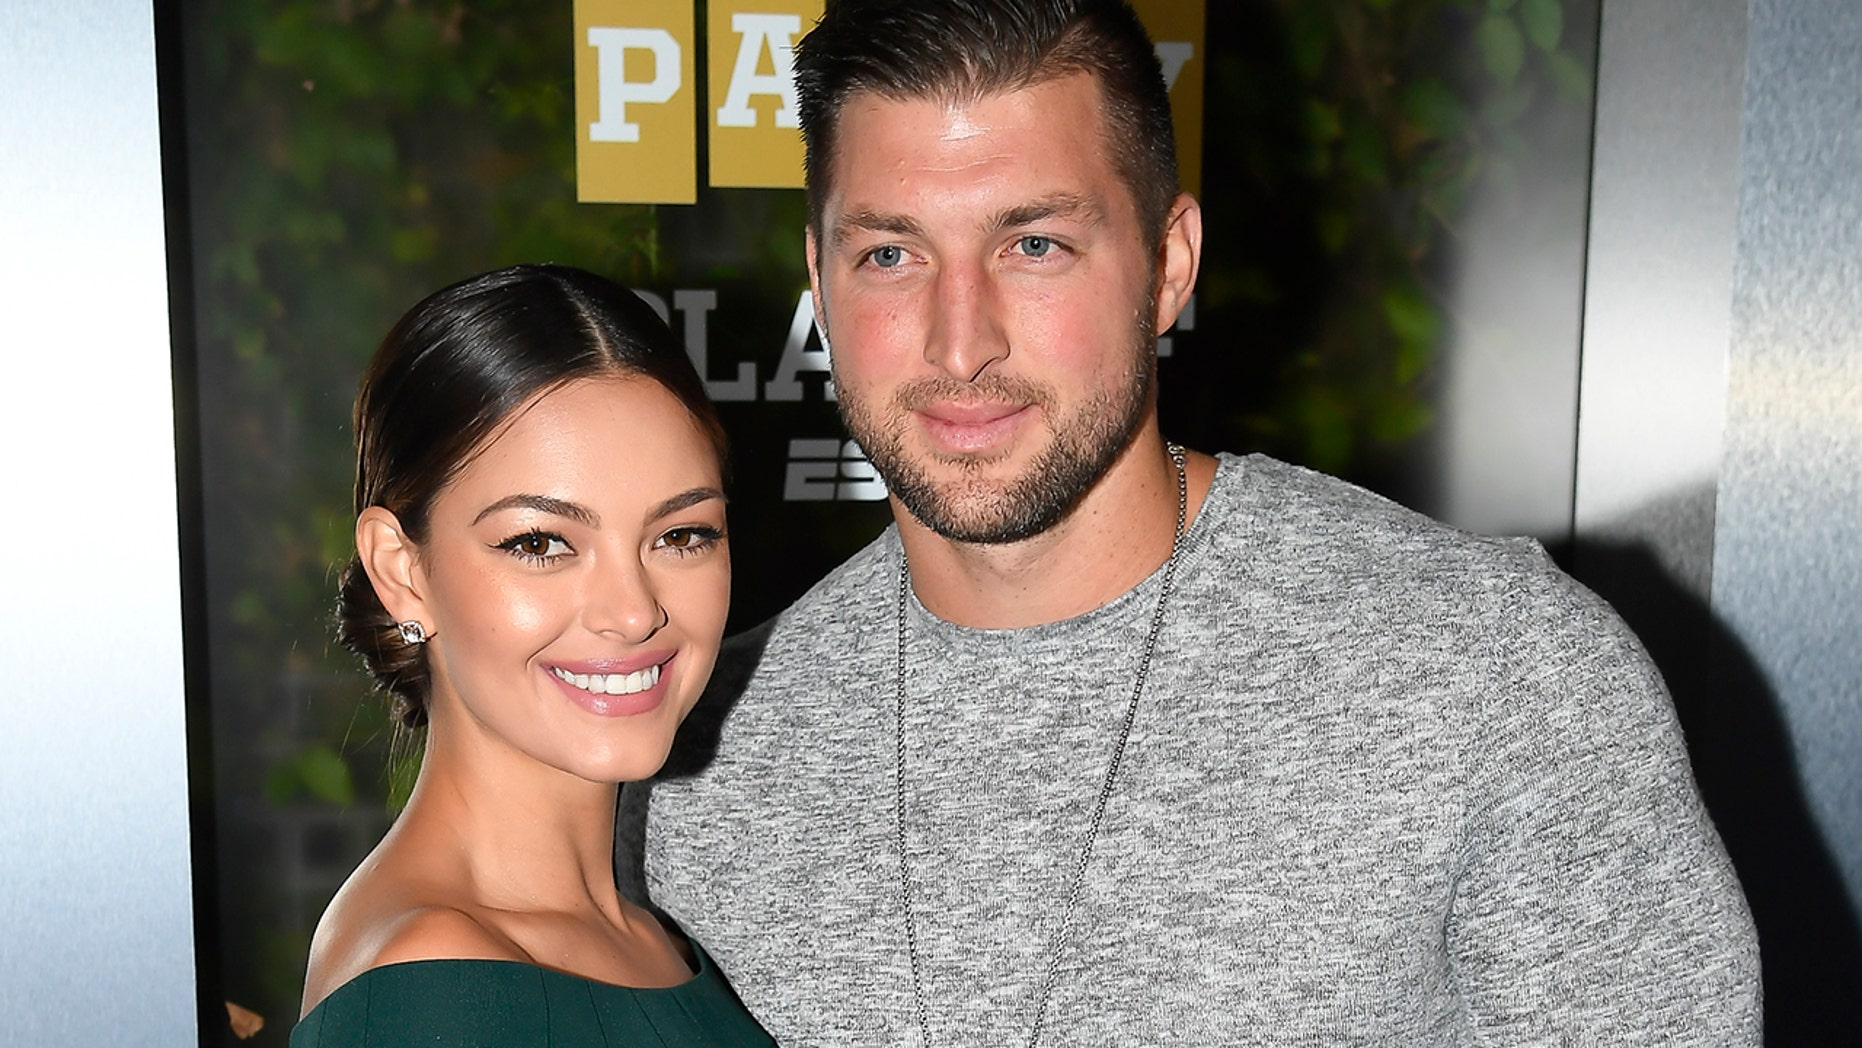 Miss Universe 2017 Demi-Leigh Nel-Peters and Tim Tebow of ESPN attend the Party At The Playoff at The GlassHouse on January 5, 2019 in San Jose, California. The couple became engaged in January 2019.